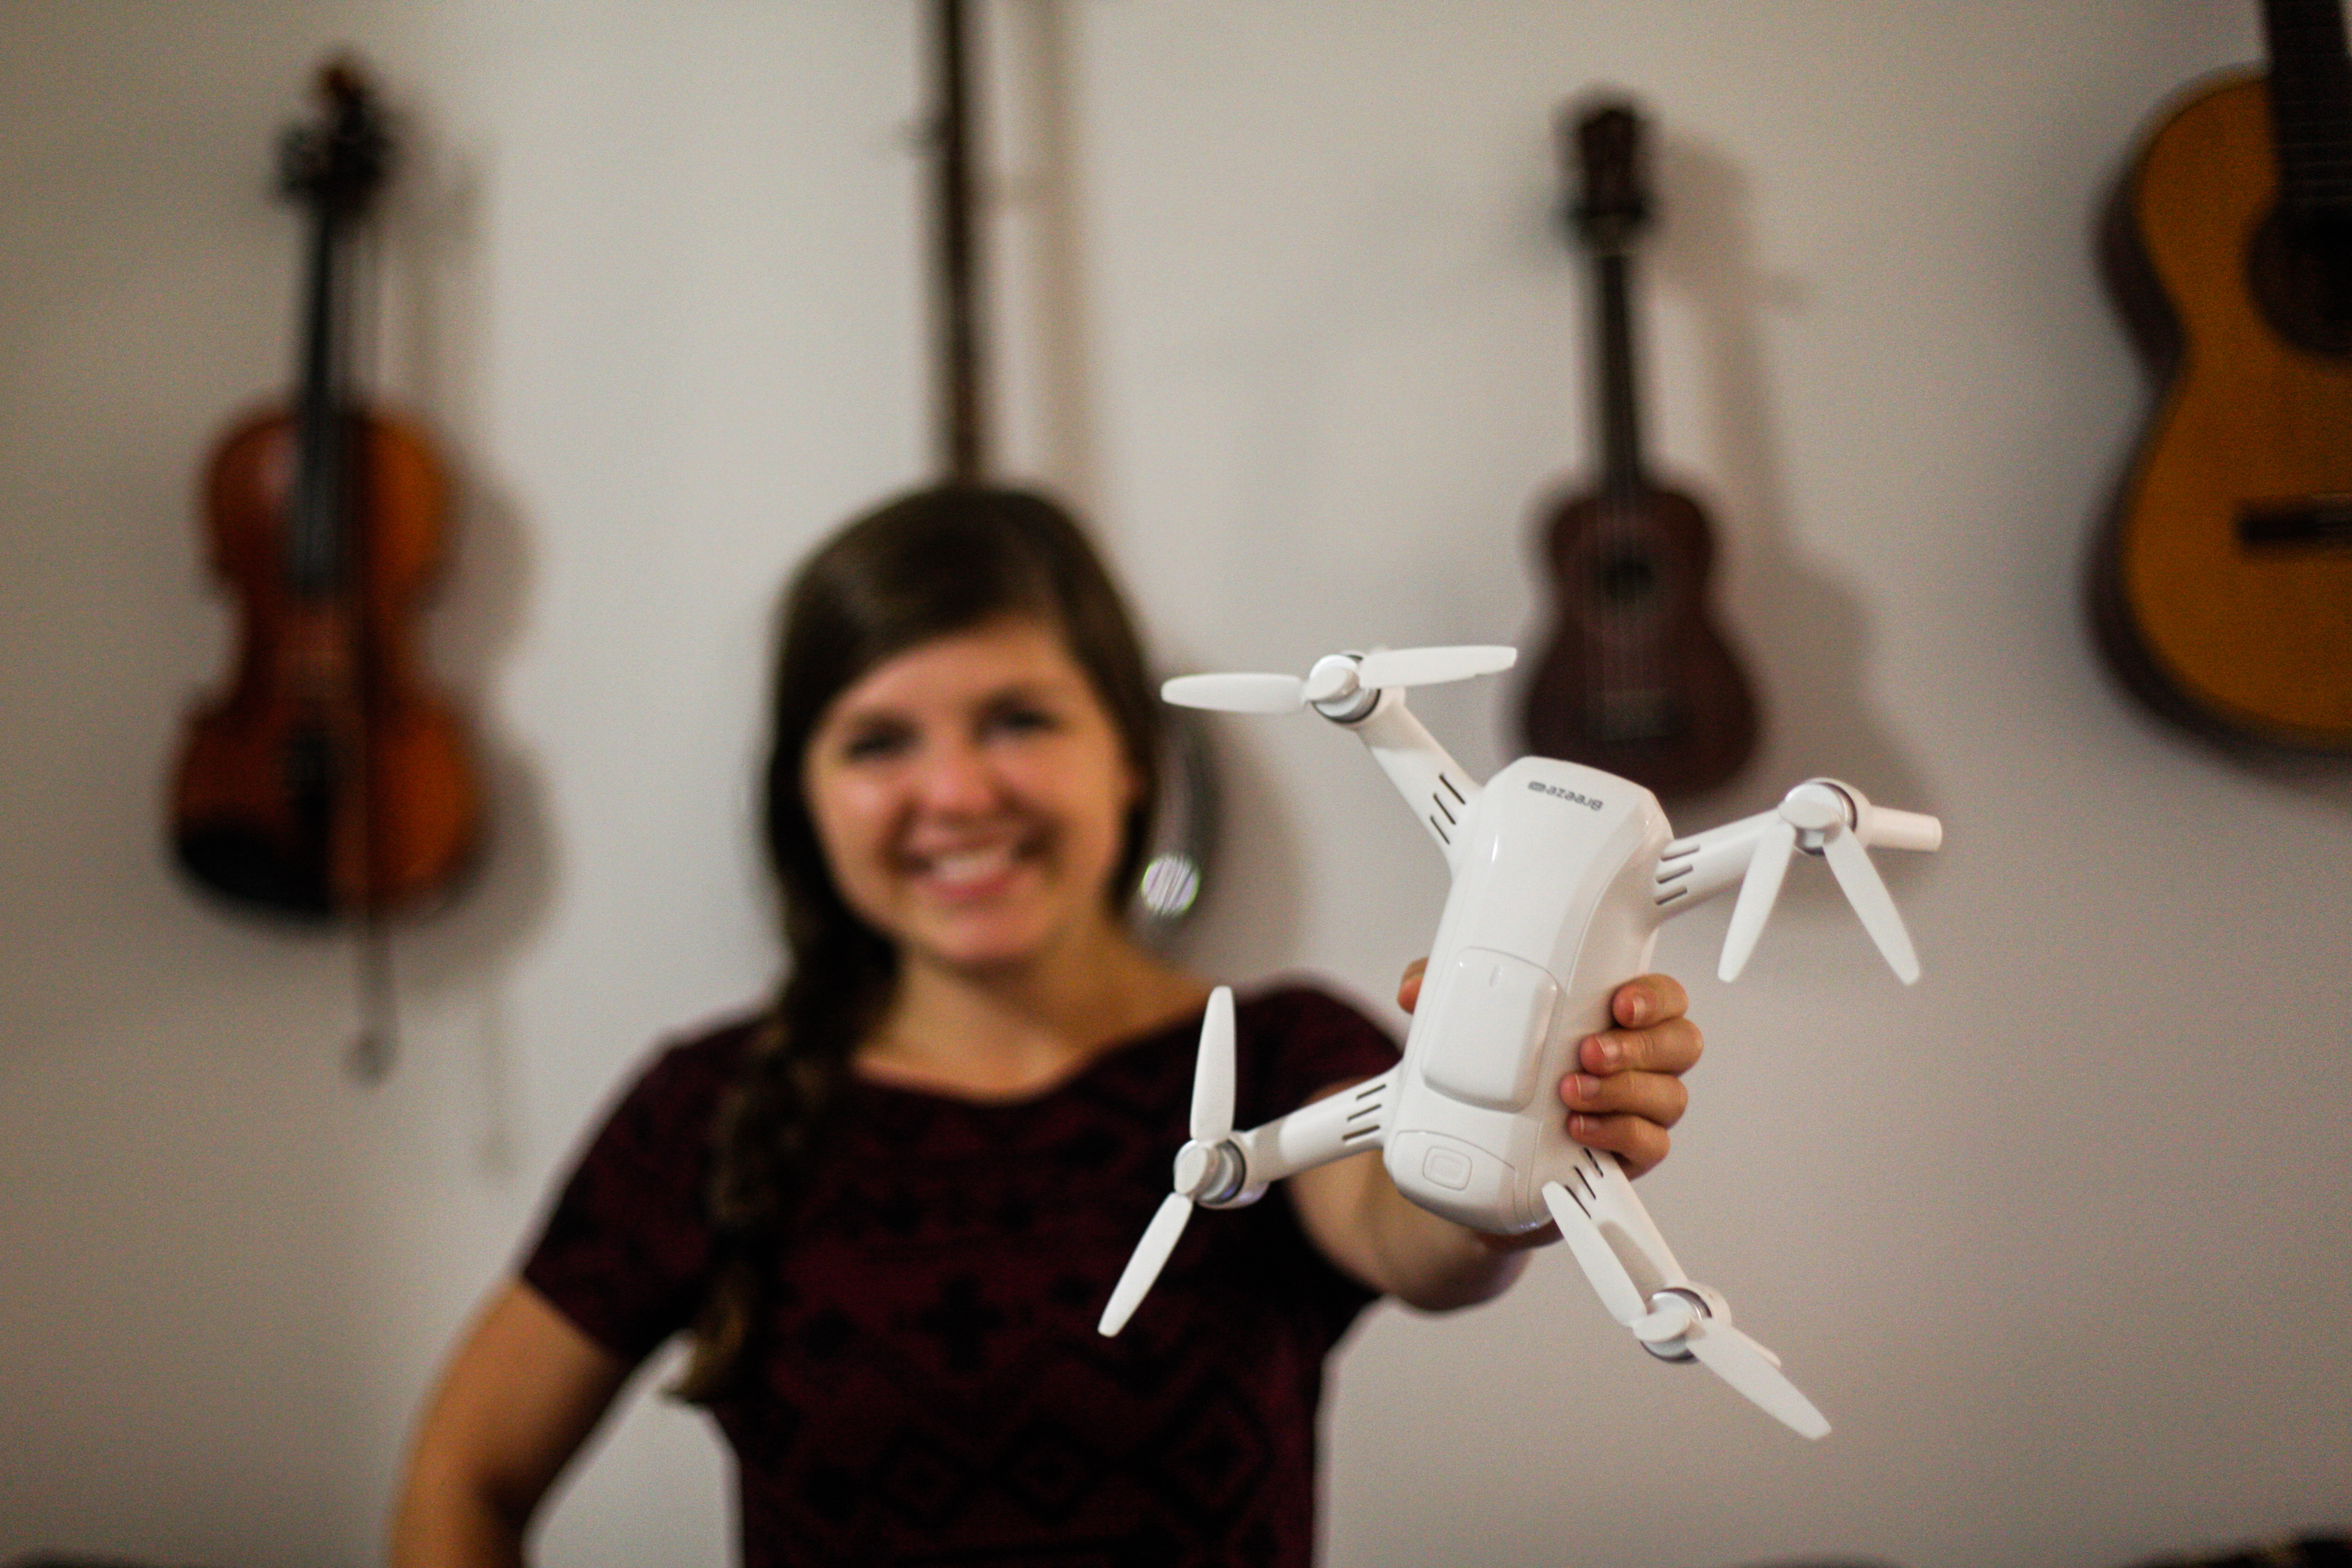 Yuneec Breeze review: an easy-to-fly selfie cam drone - The